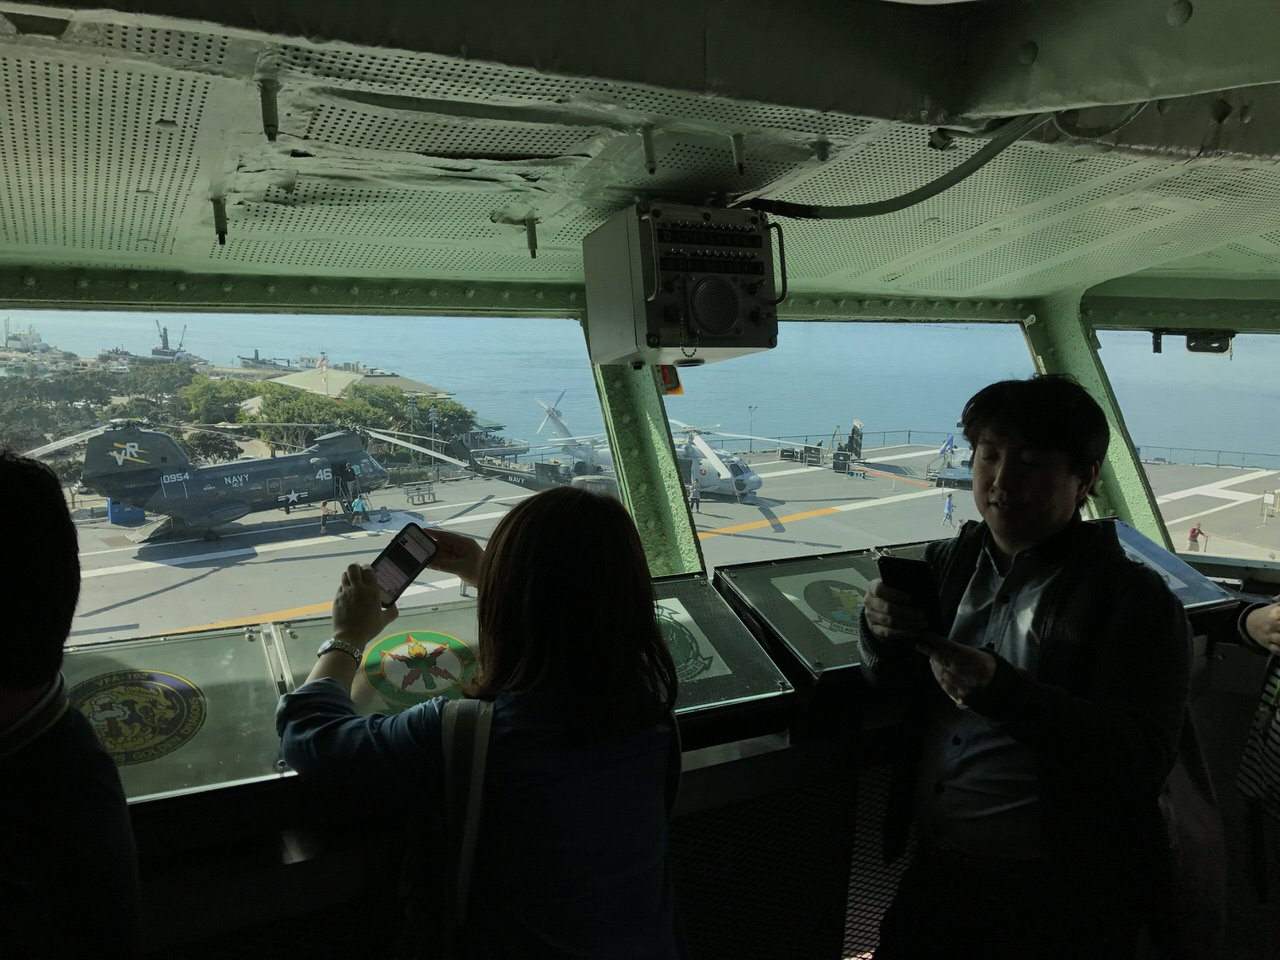 Uss midway museum 0570